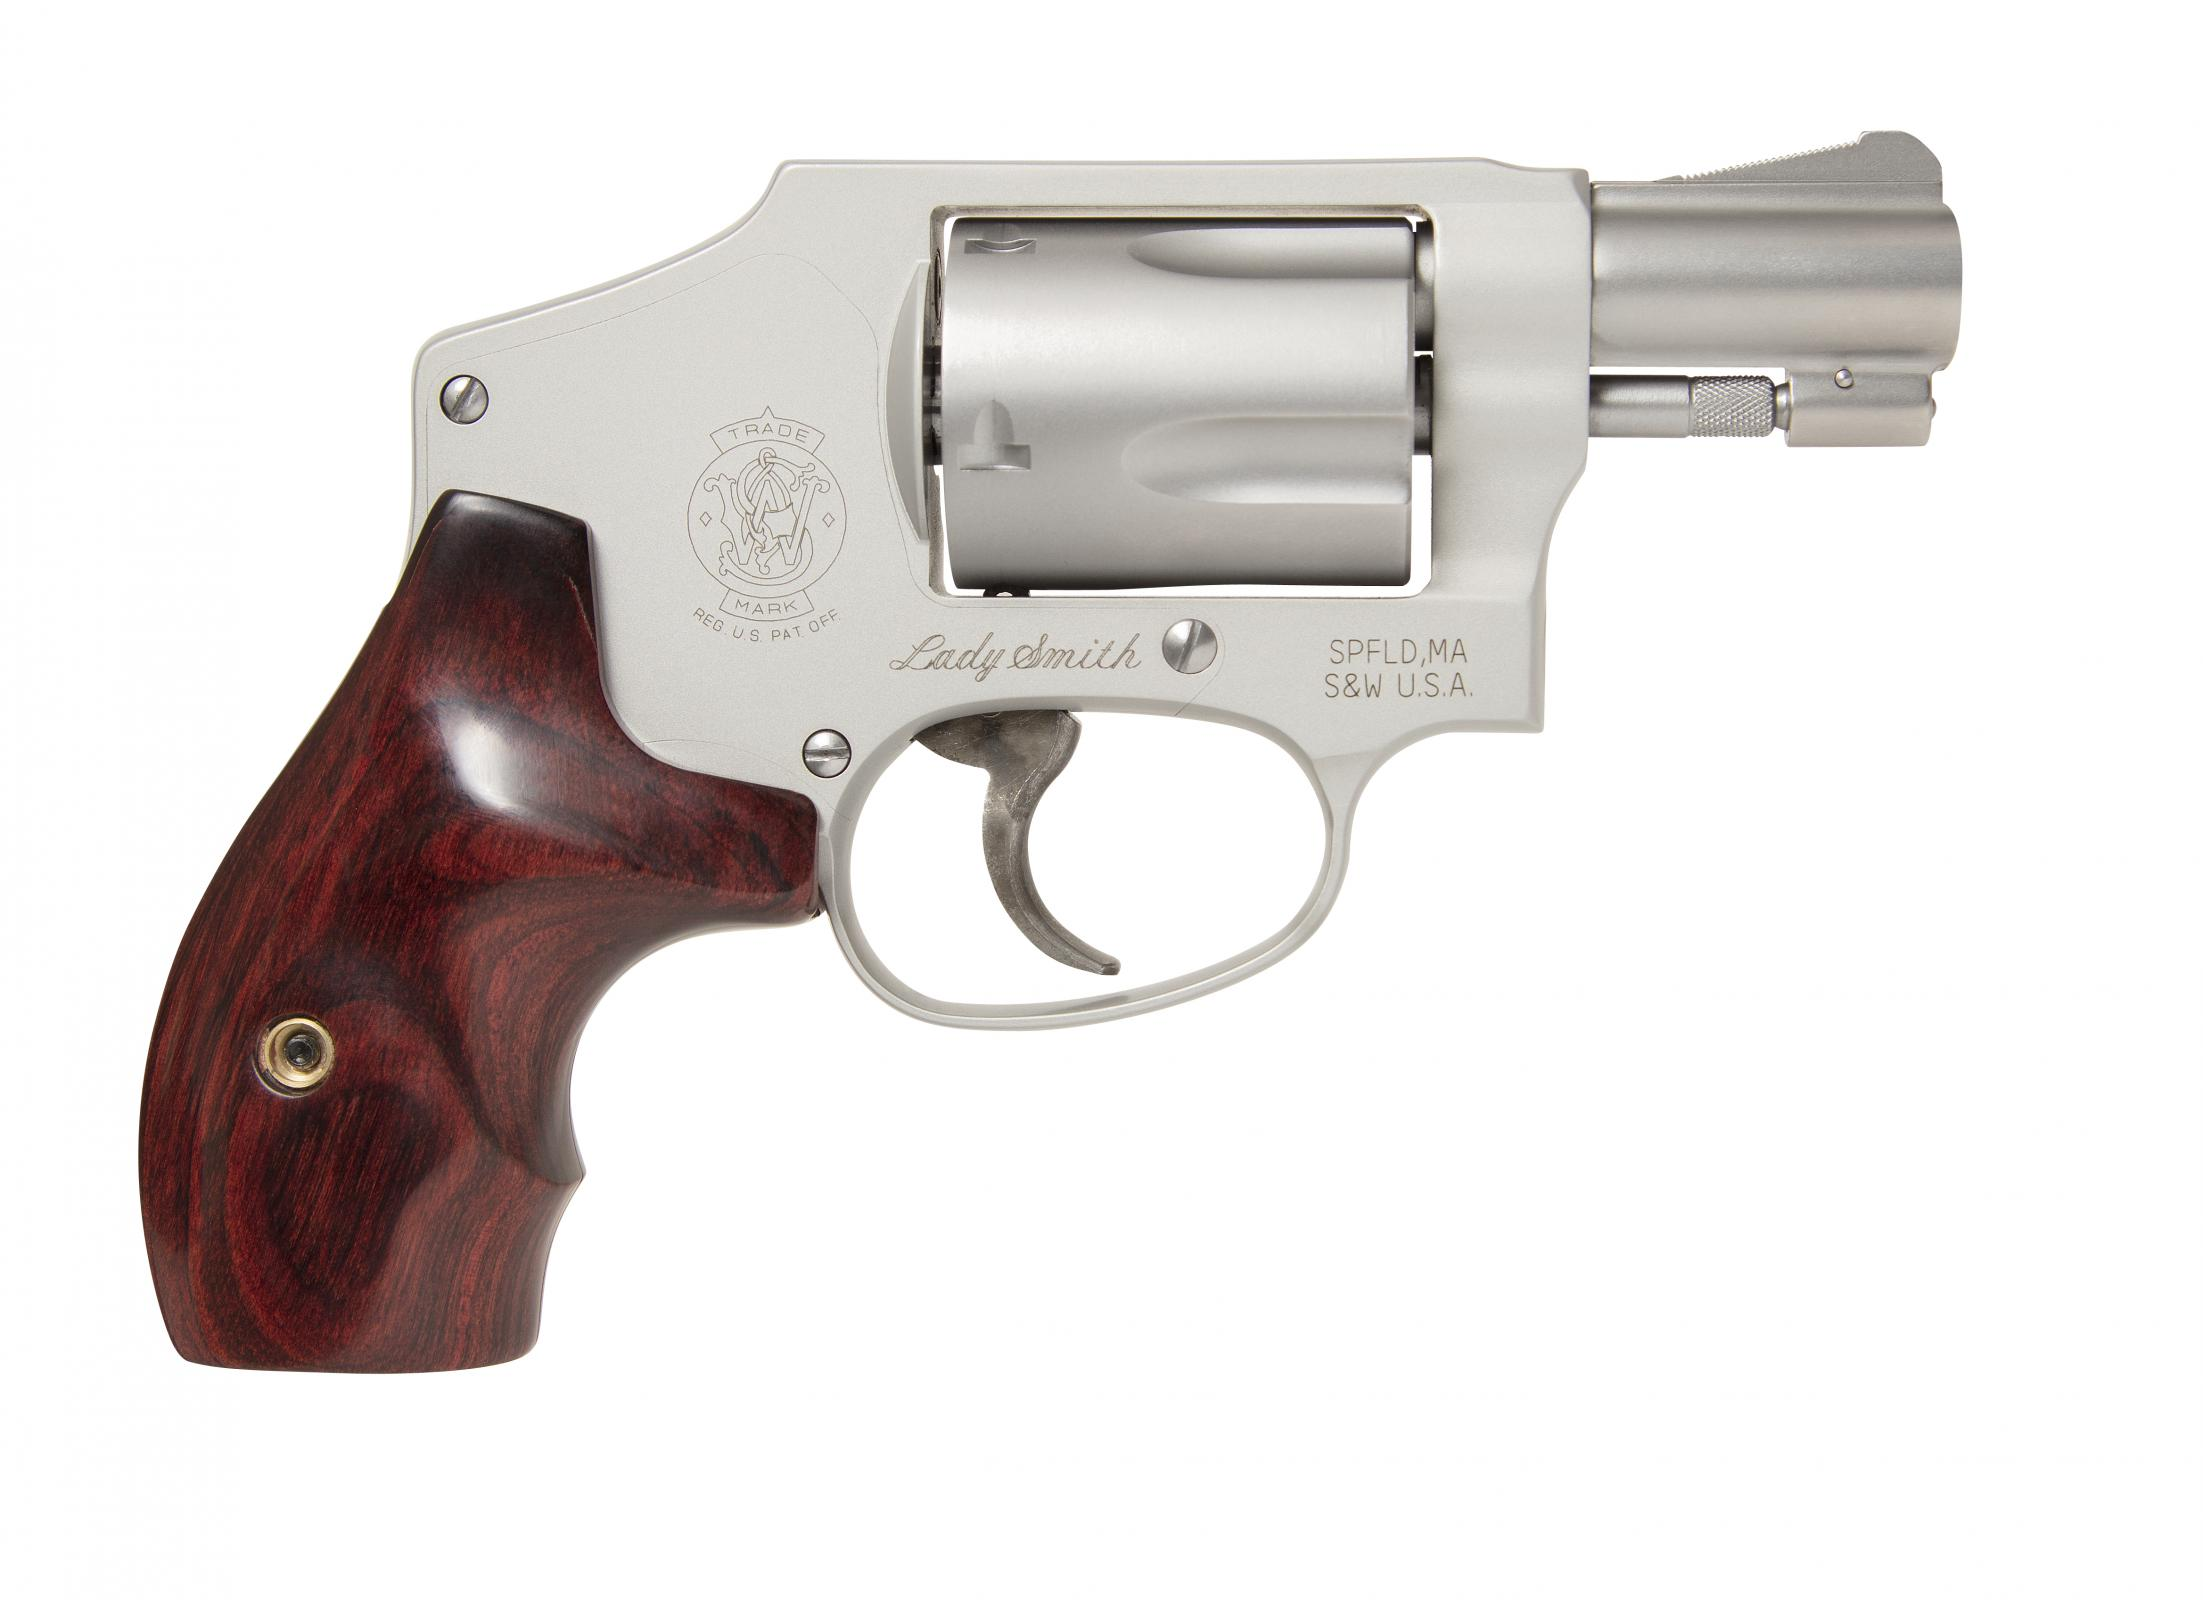 Smith and Wesson 642LS LADYSMITH 38 SPECIAL